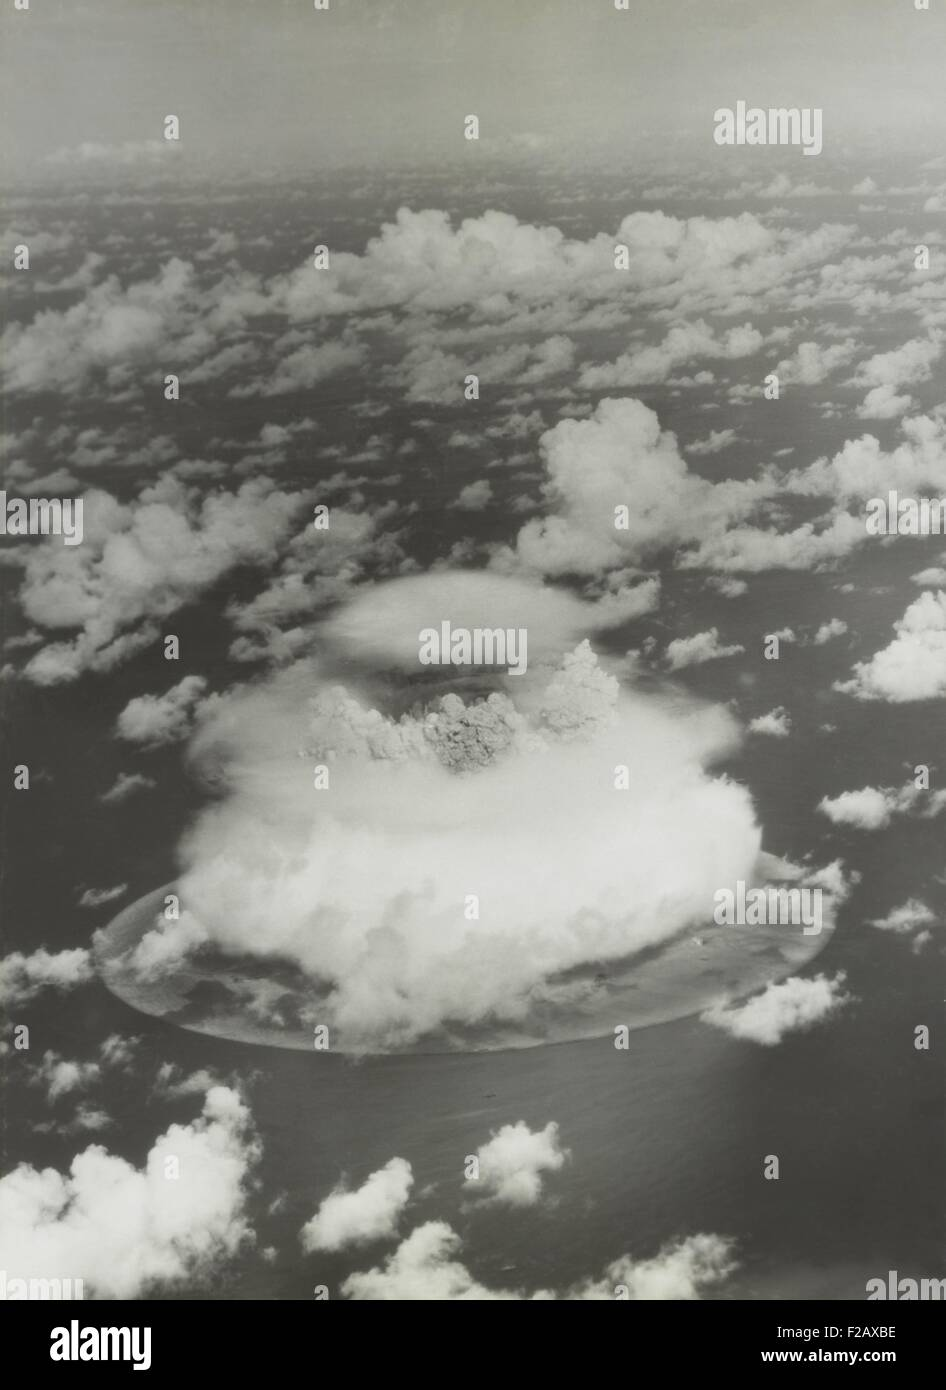 The BAKER test of Operation Crossroads, July 25, 1946. The fireball and water column emerge from the dome of condensation - Stock Image